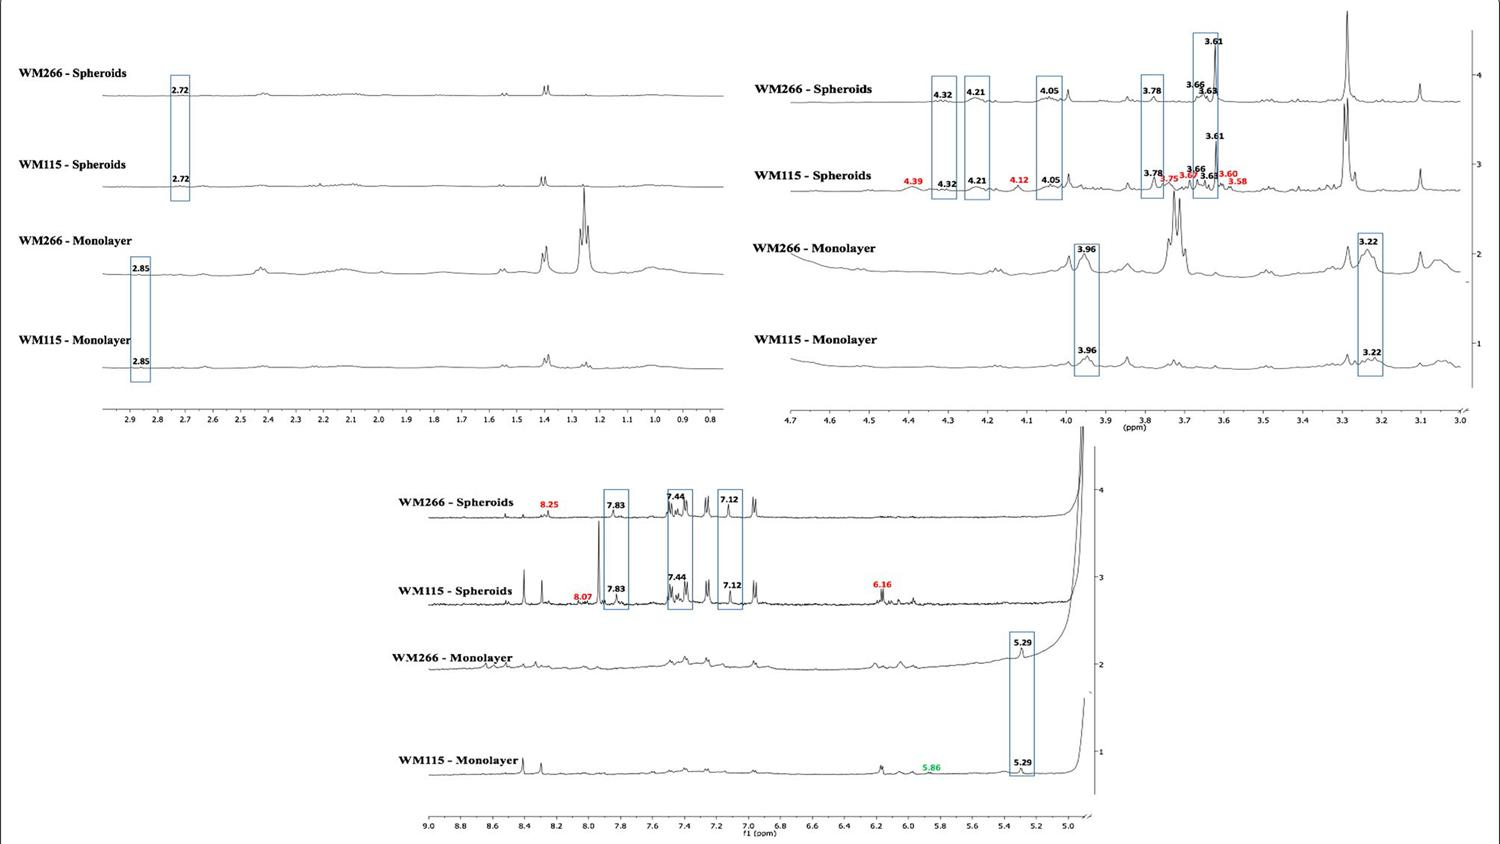 Proton Nmr Characterization Of Intact Primary And Metastatic